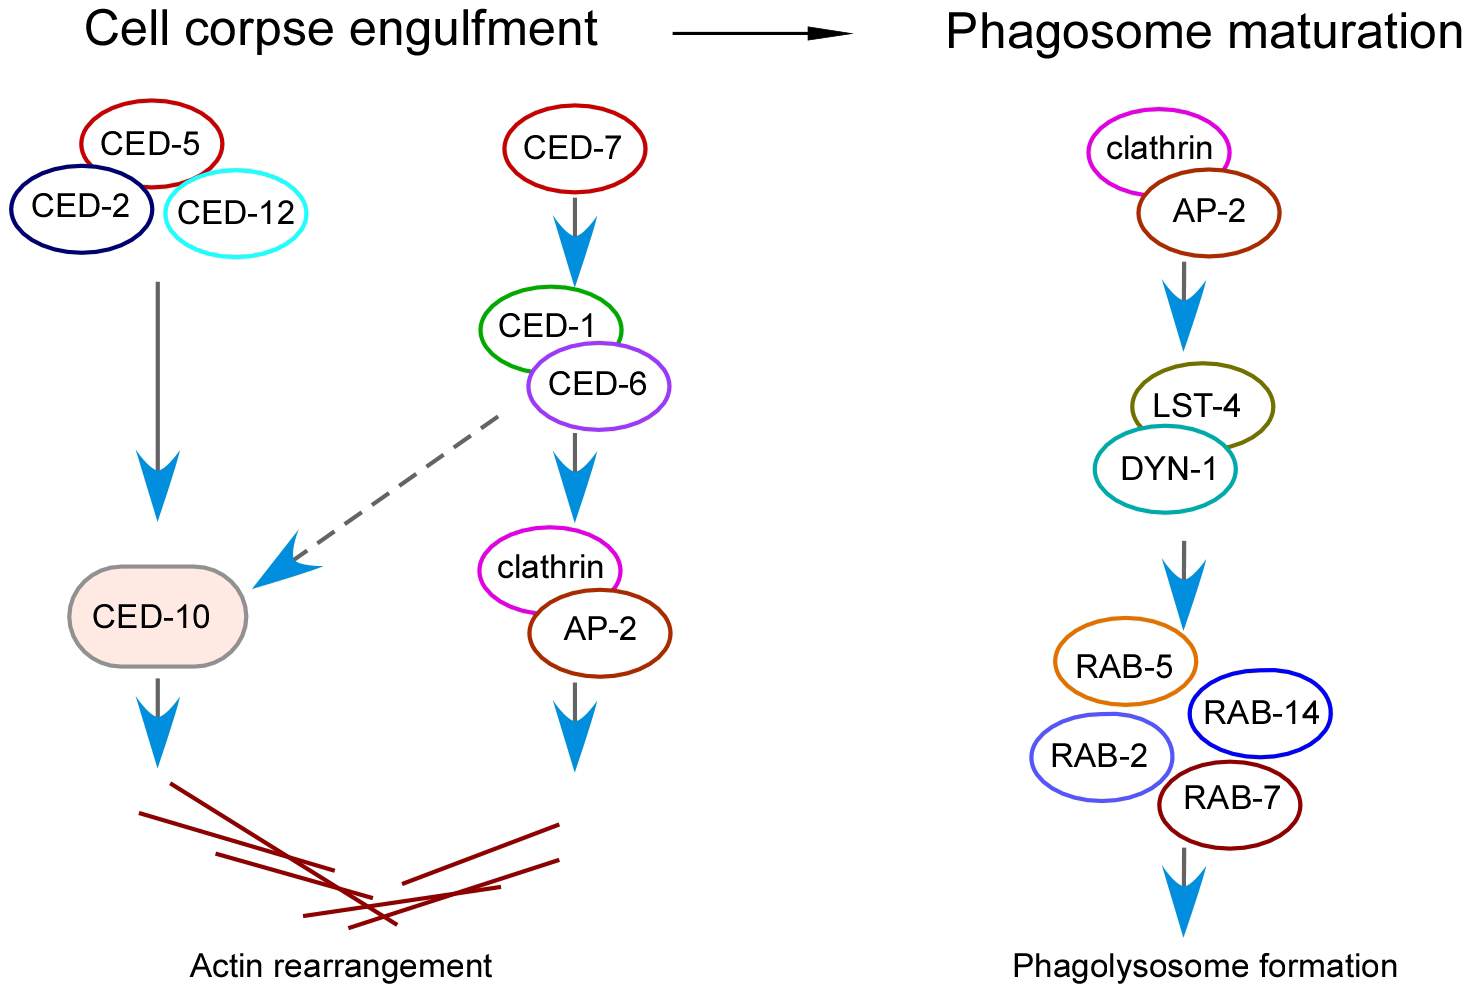 Schematic summary of the role of clathrin and the AP2 complex in both corpse engulfment and phagosome maturation during phagocytosis of apoptotic cells.